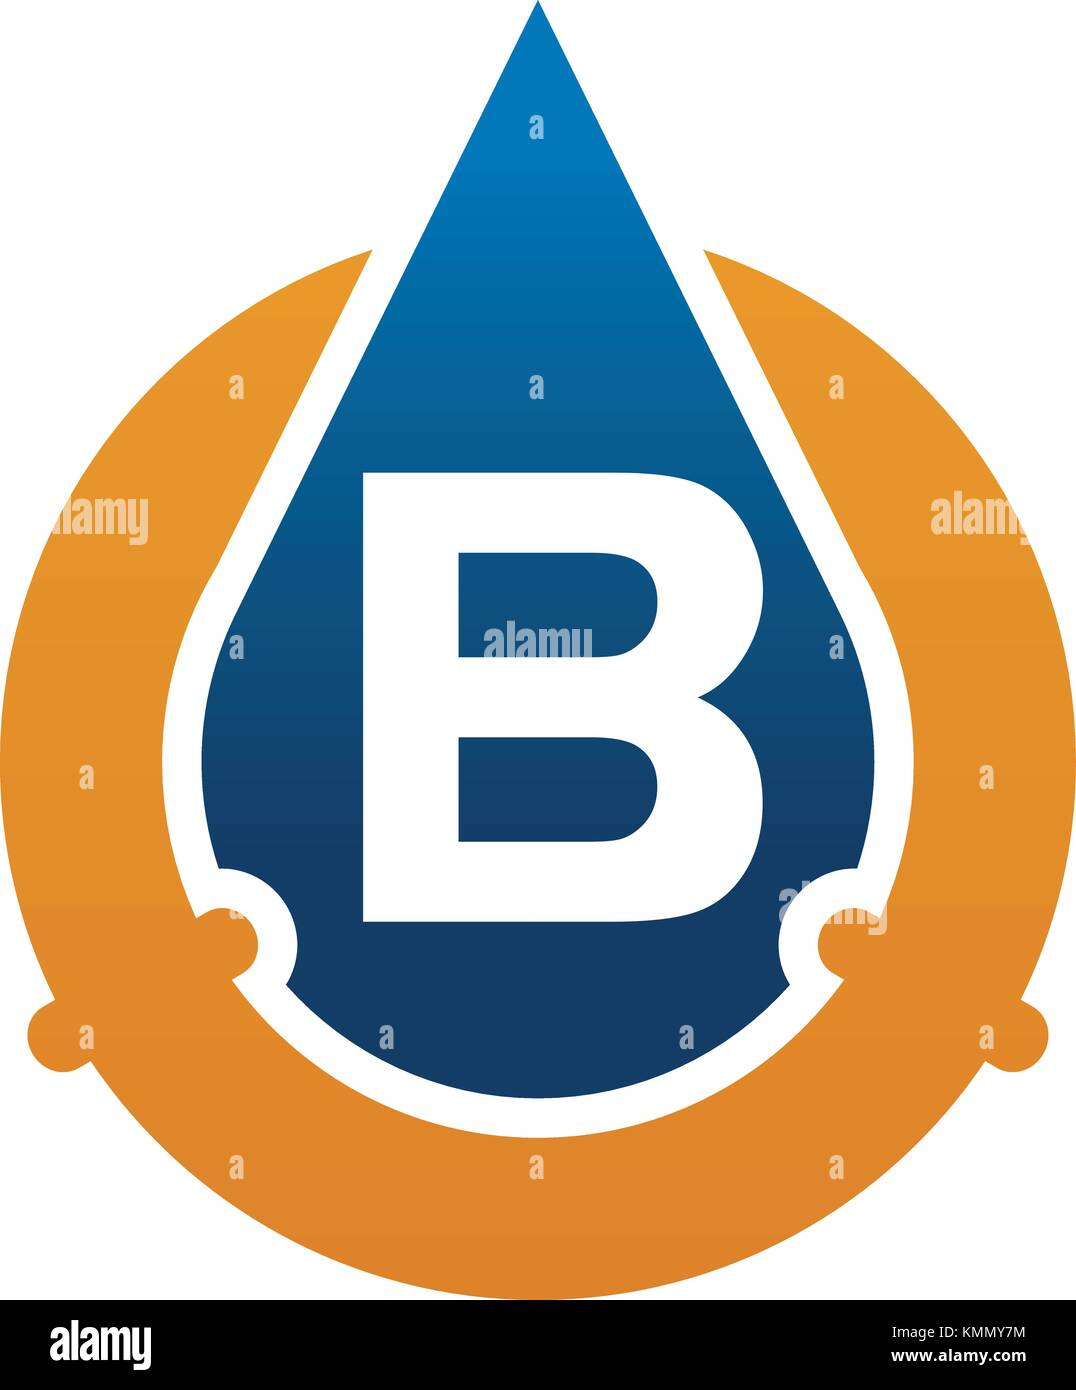 B Stock Solutions oil water pipe solutions letter b stock vector art